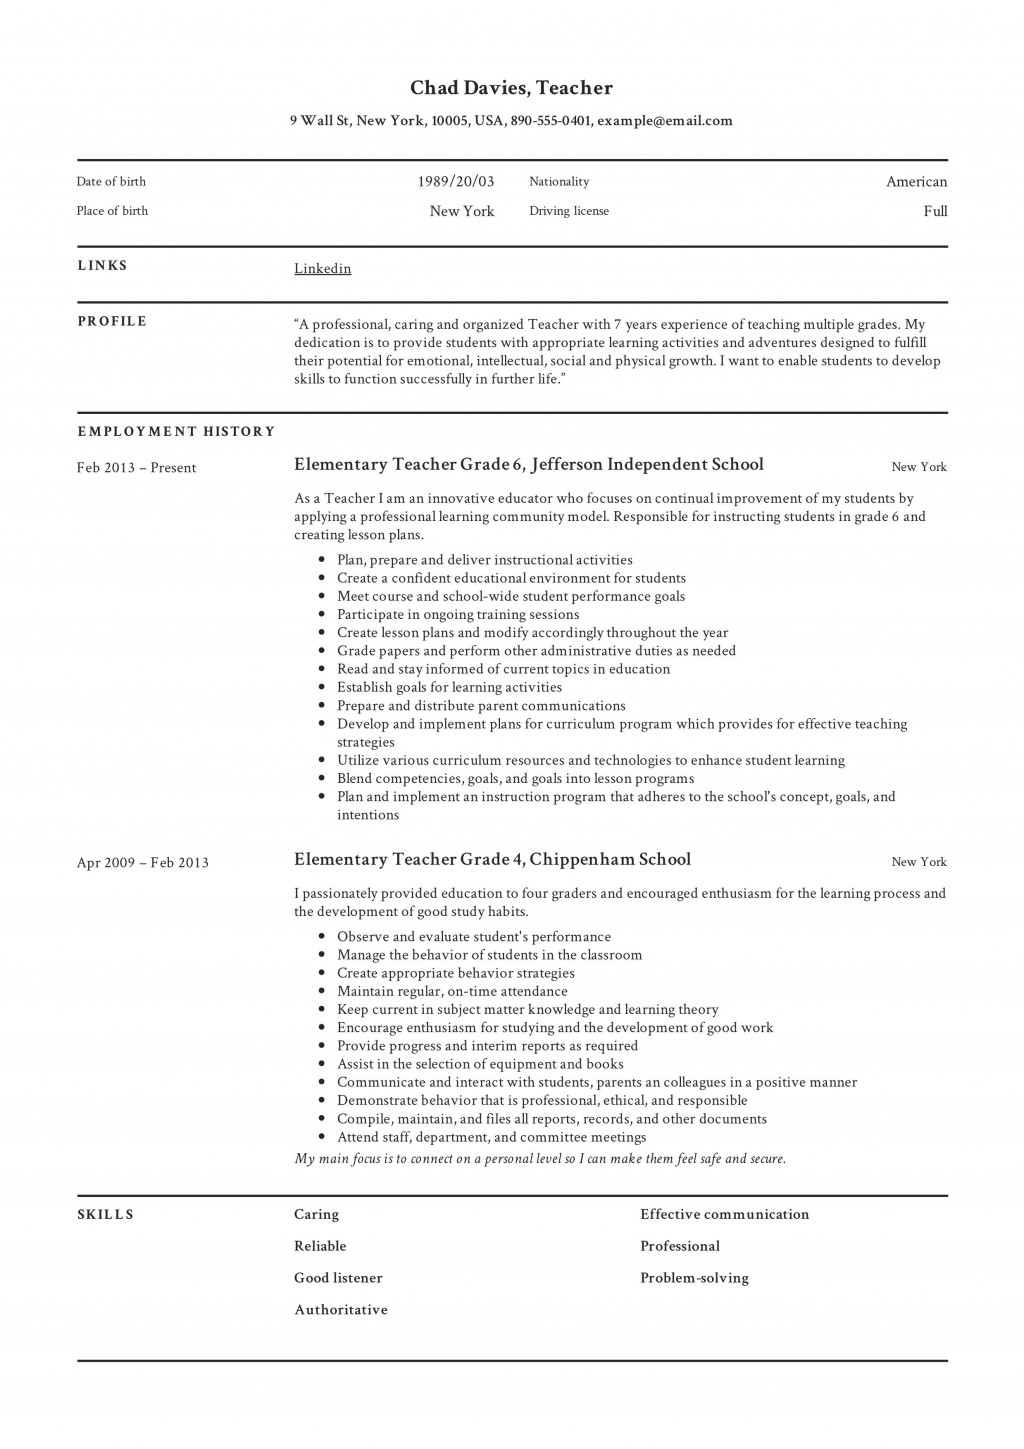 005 Staggering Resume Example For Teaching Job Highest Clarity  Jobs Format Sample Curriculum Vitae Profession In IndiaLarge